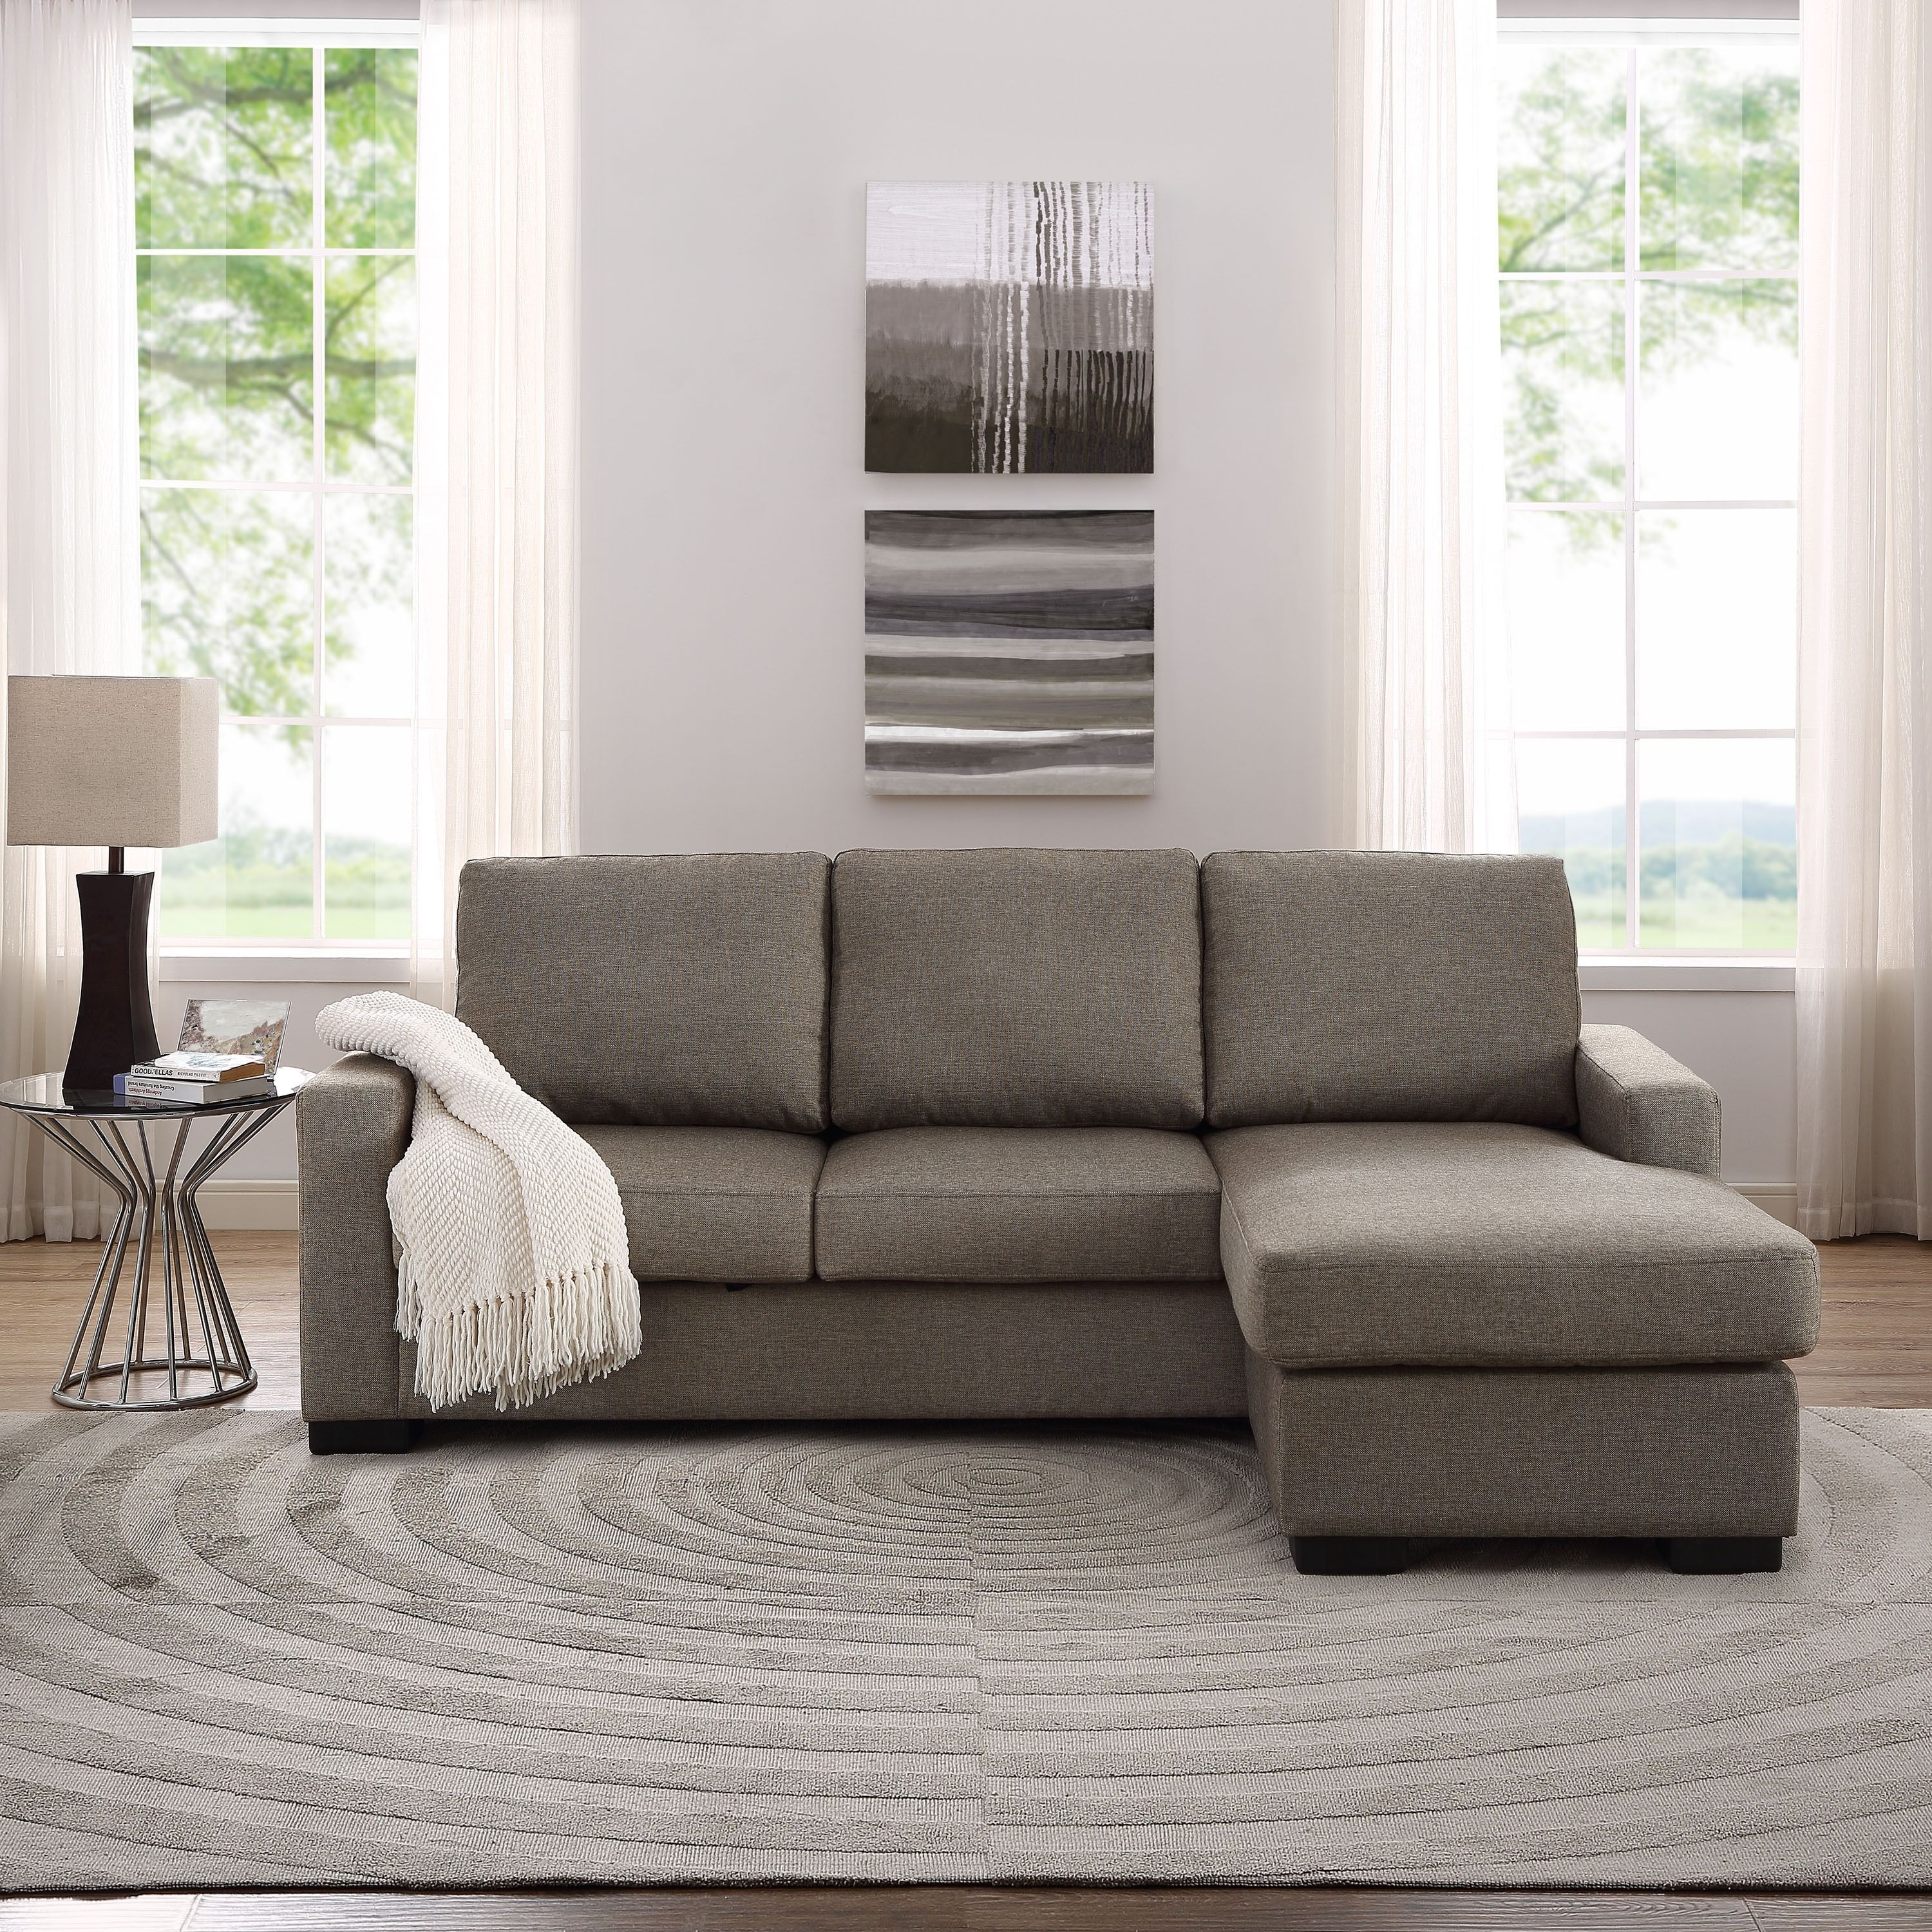 The Hom Colton Linen Sectional Sofa with Reversible Chaise the